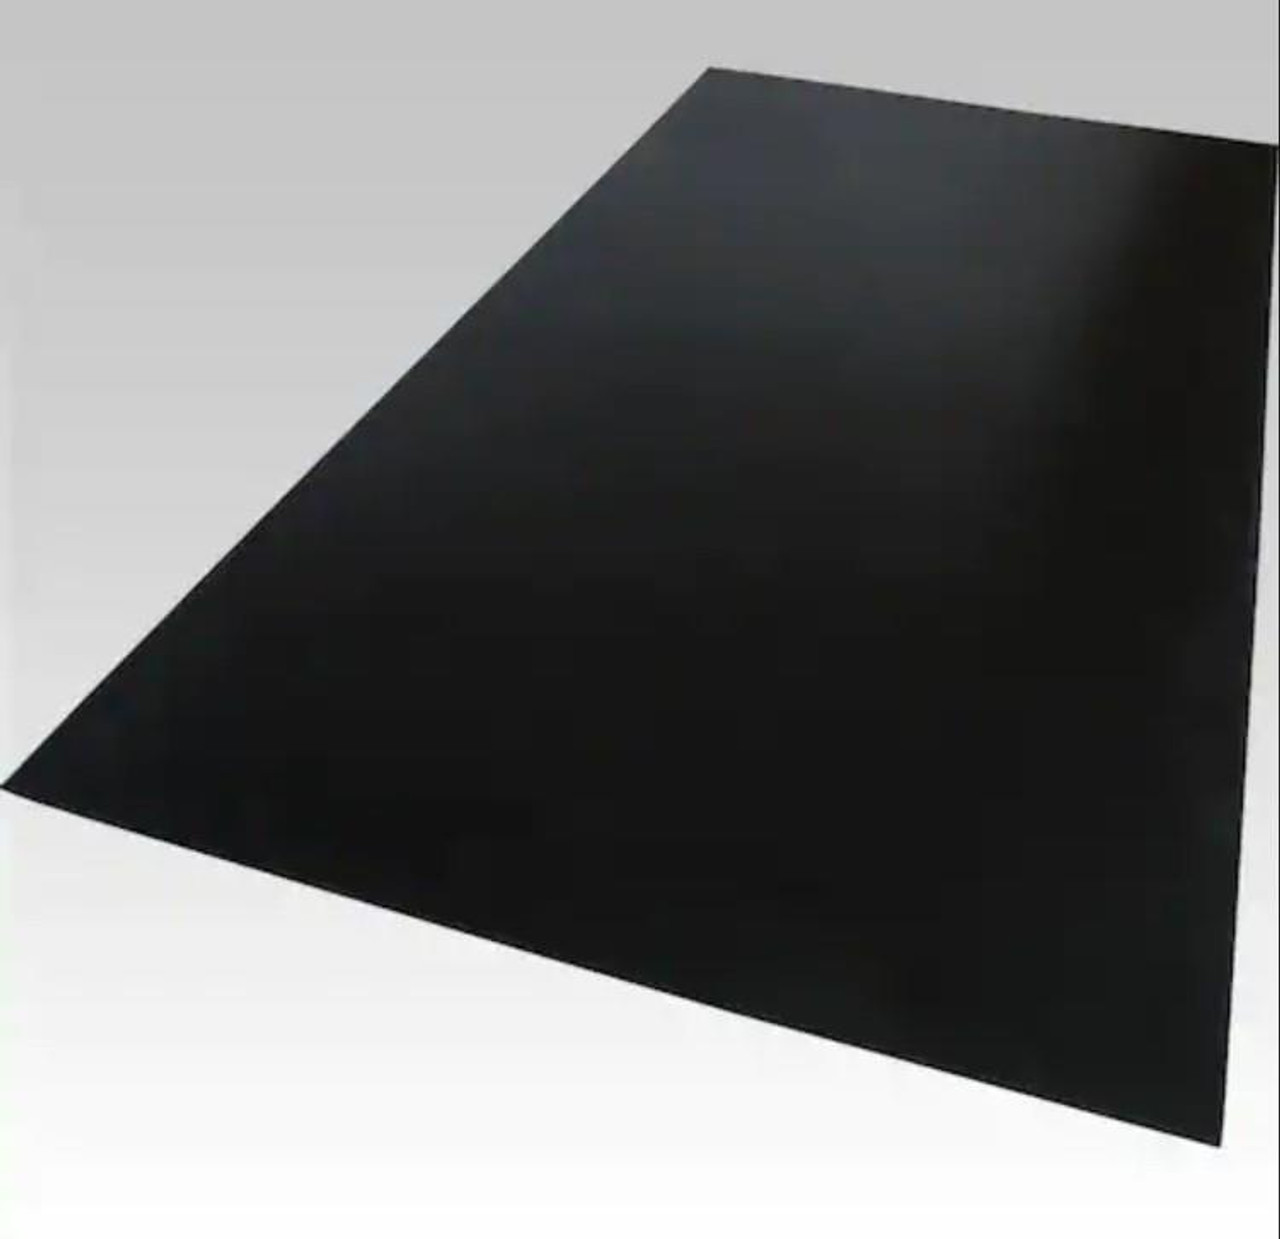 "Black Plexiglass Cast Acrylic Sheet 24/"" X 24/"" X 1//8/"""